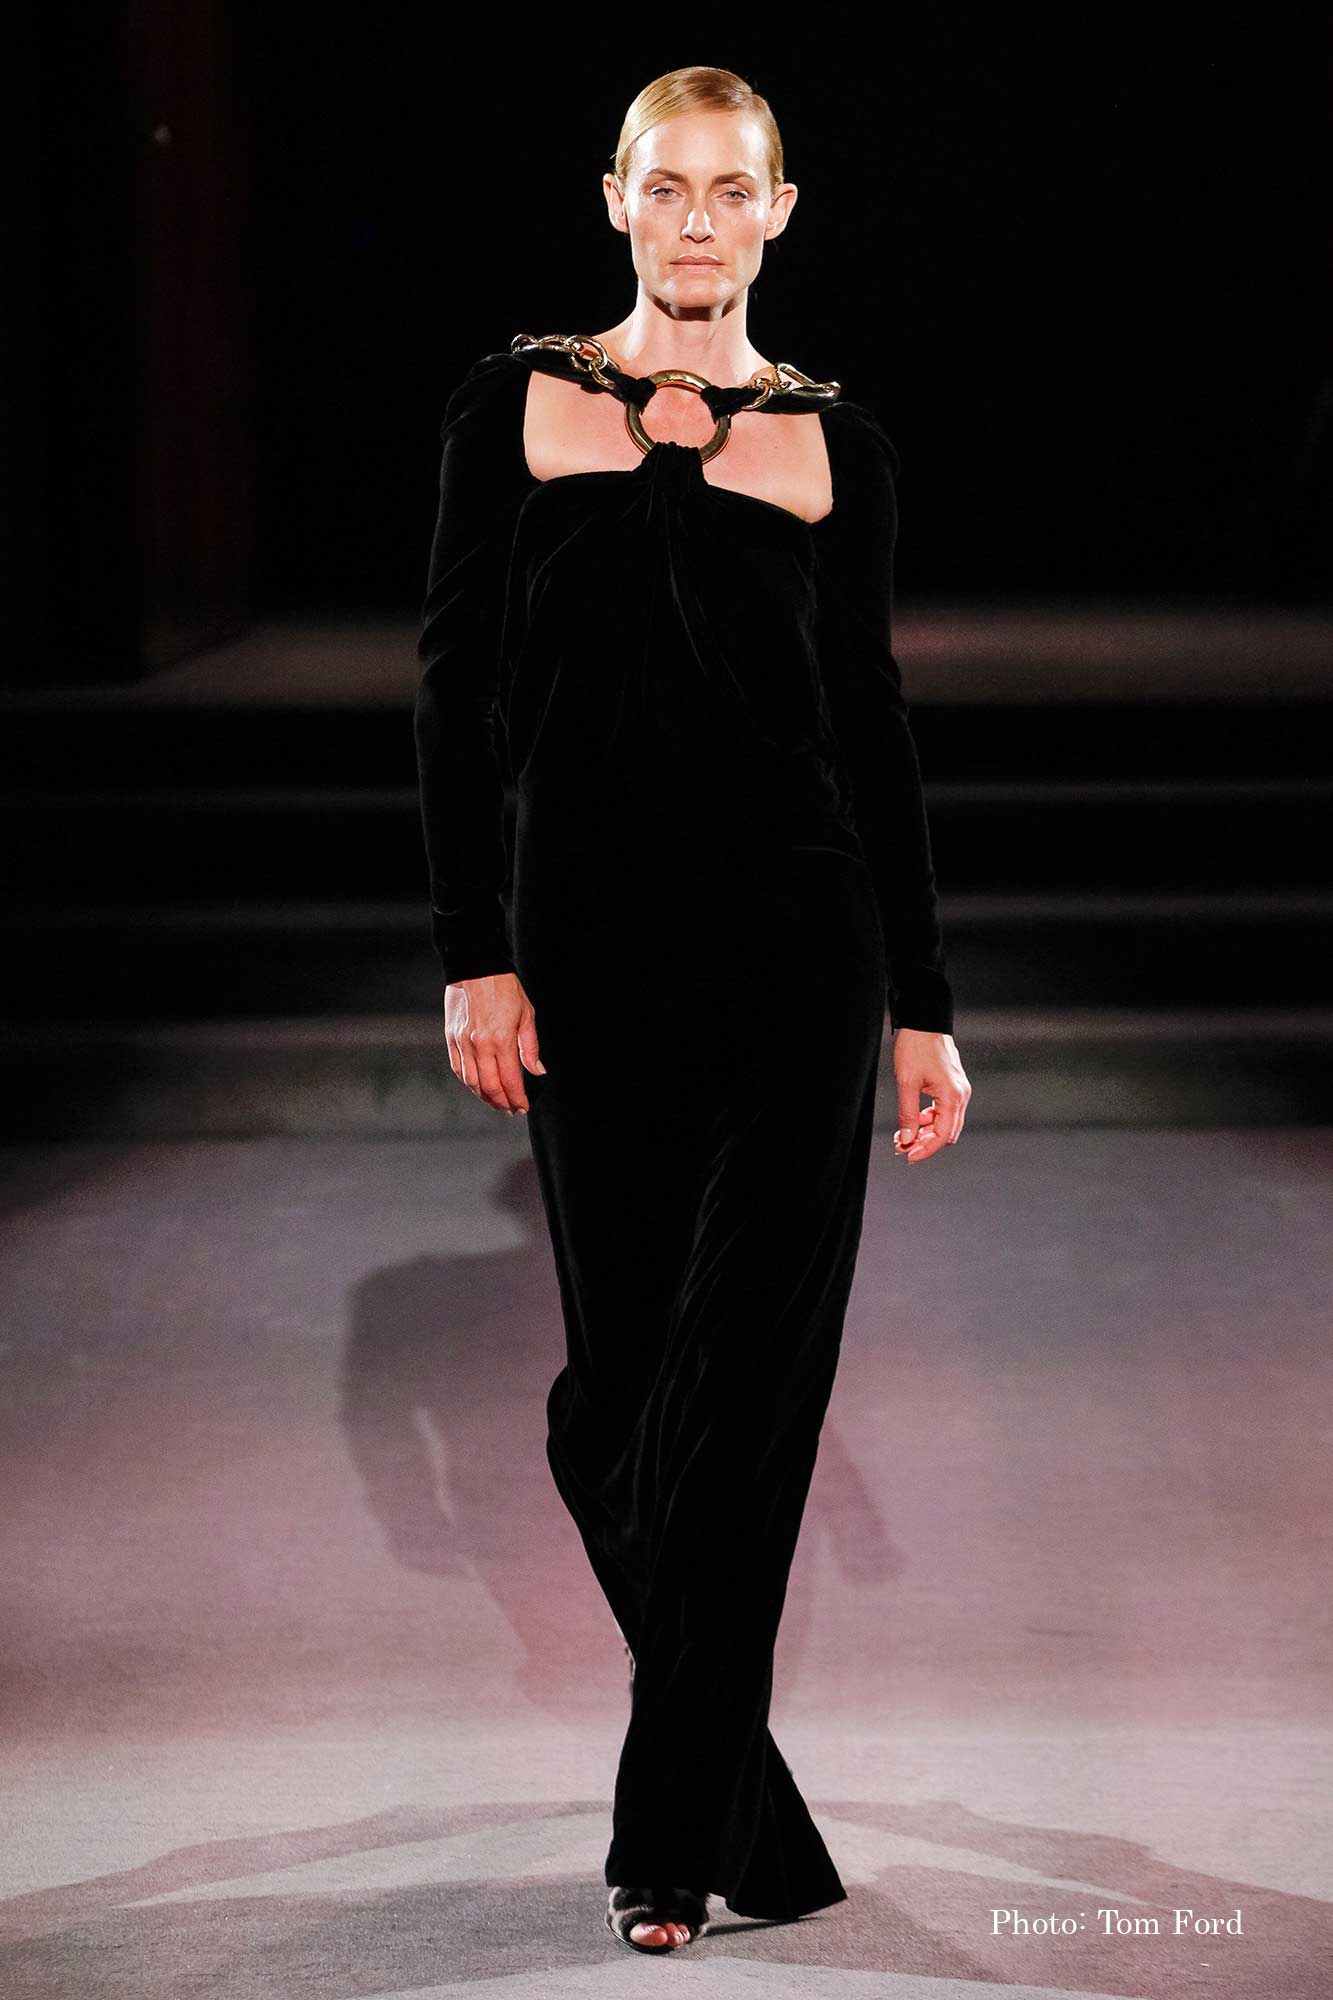 Tom Ford, 2016 Ready-to-Wear. Vogue.com